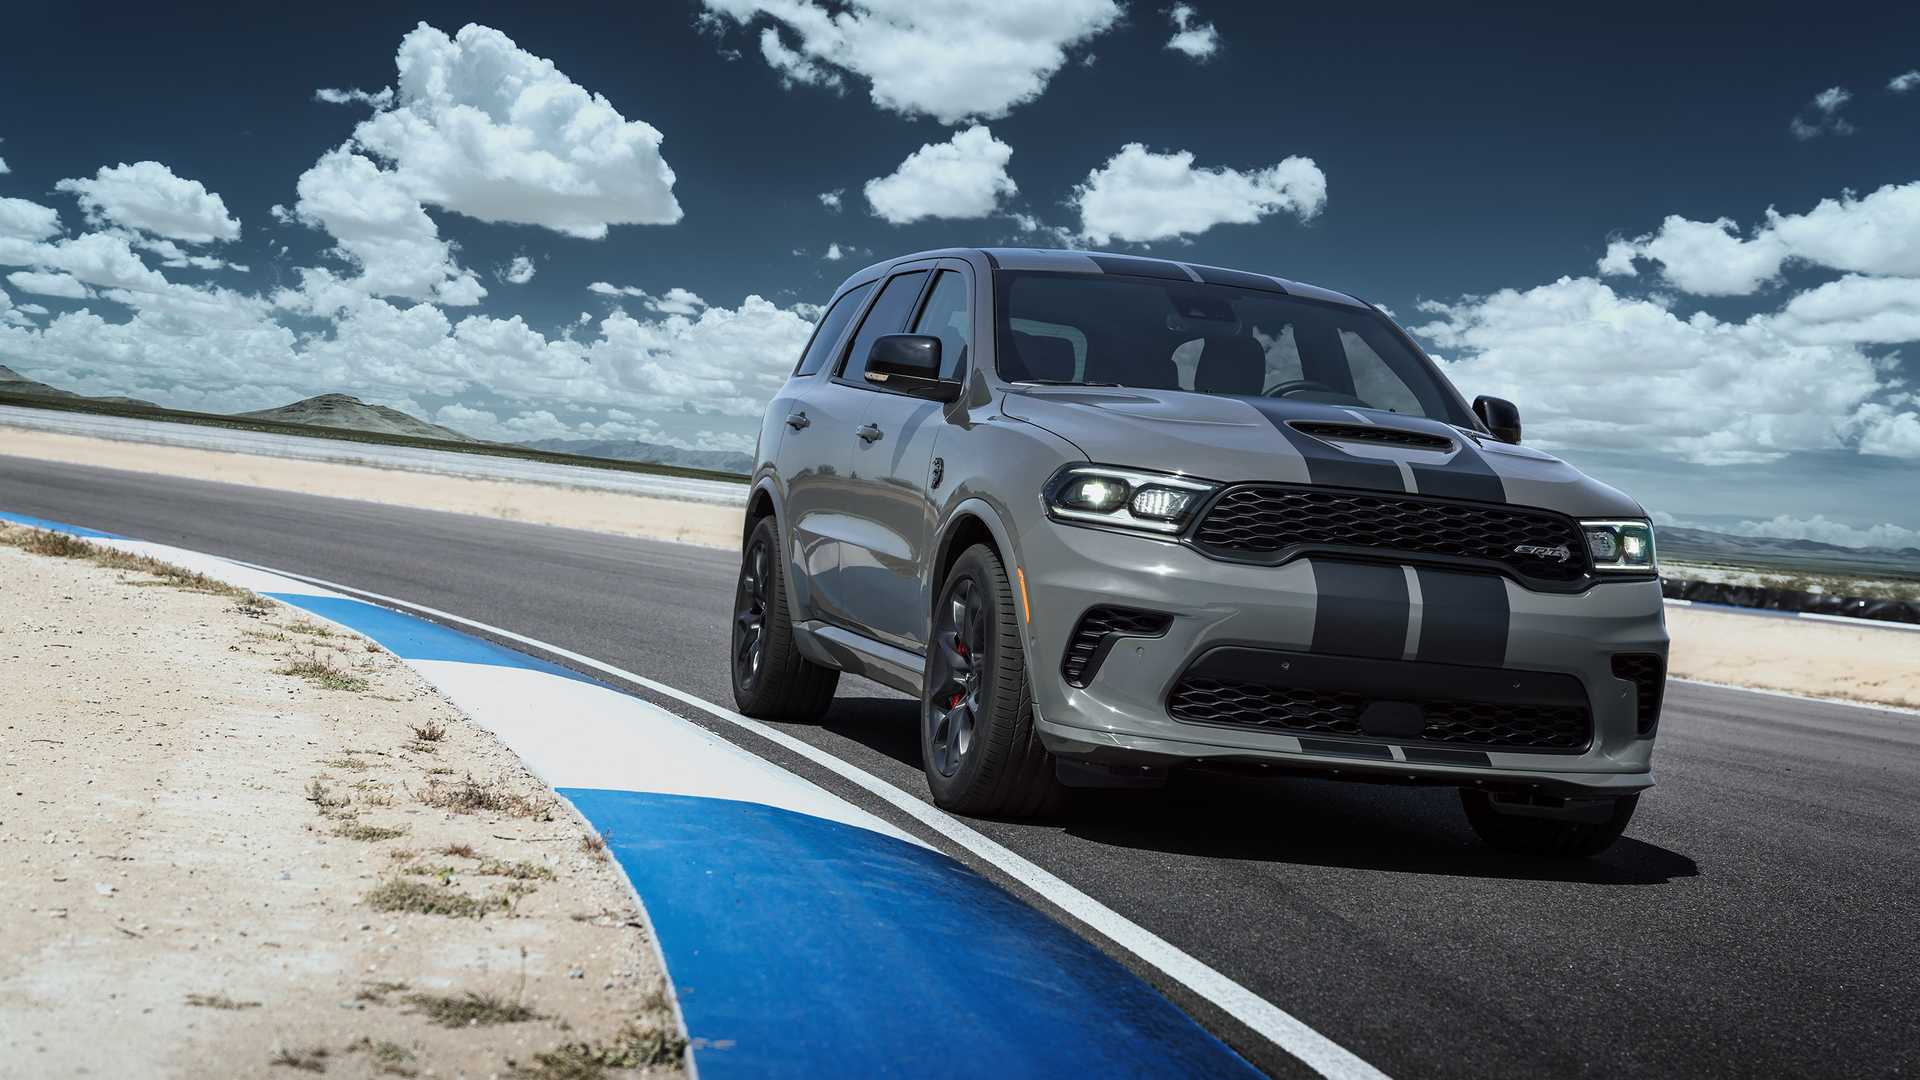 2022 Dodge Durango Srt Hellcat 0 60 Colors Images